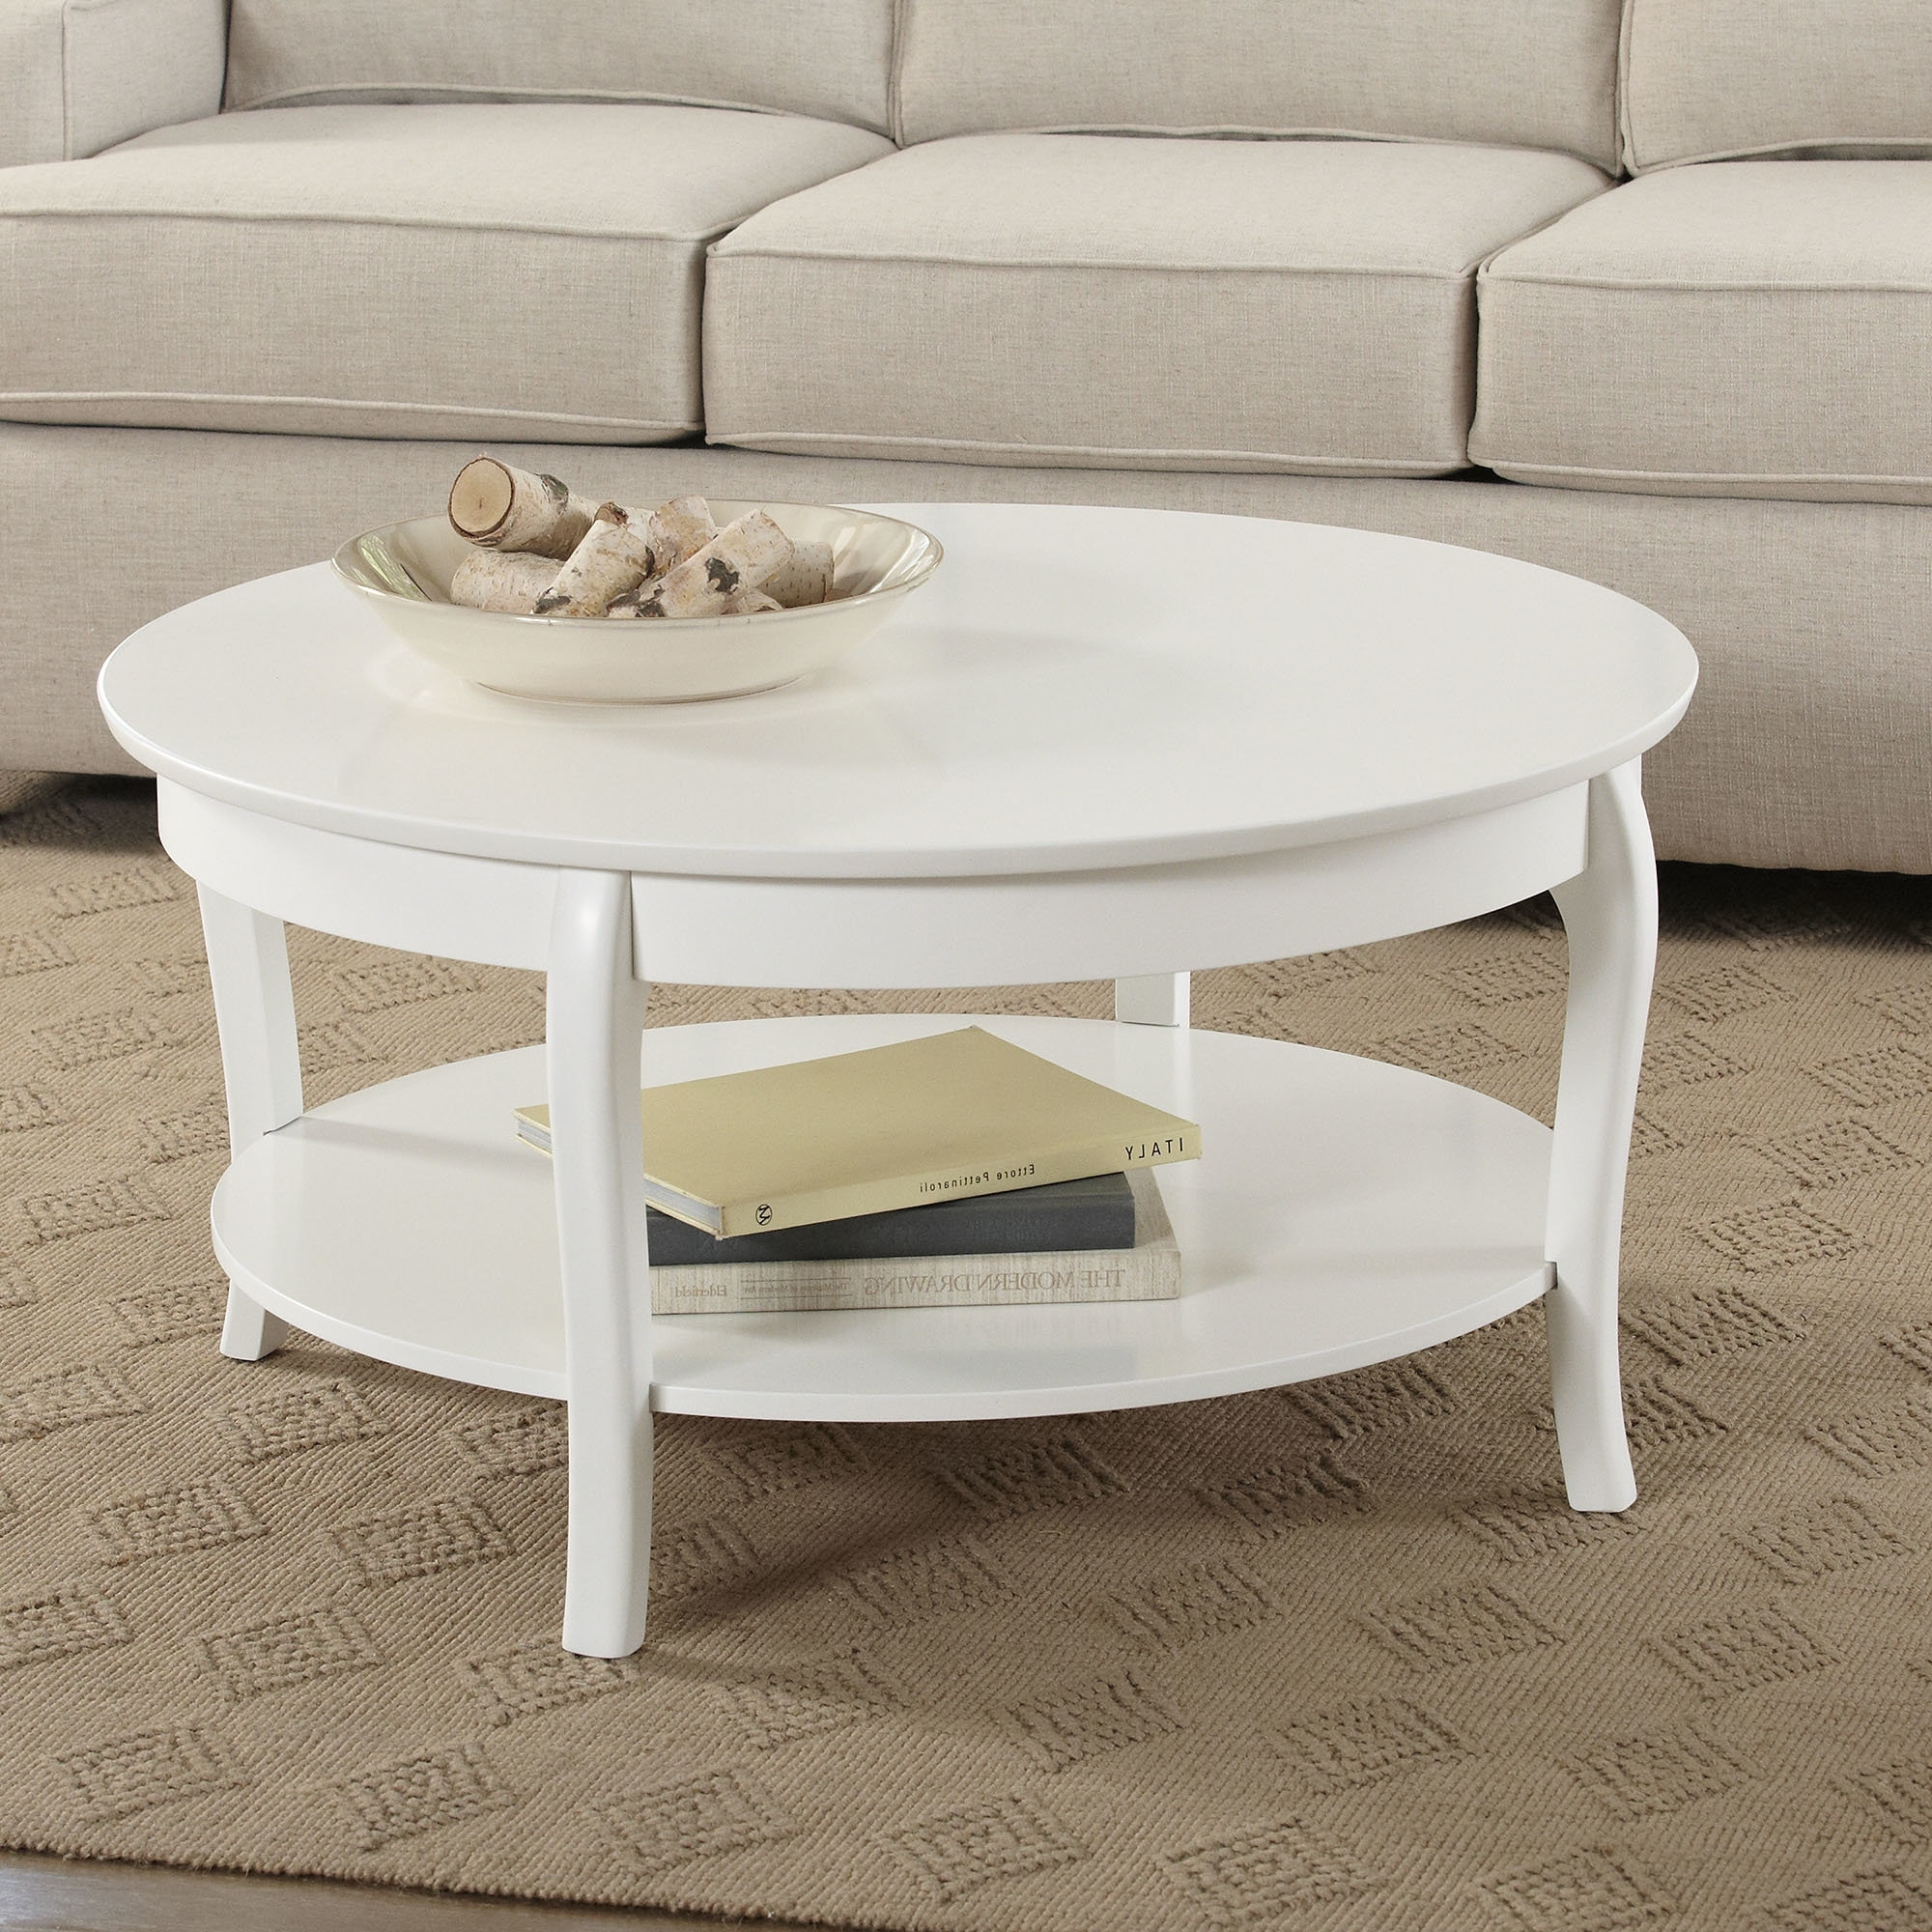 Most Popular Swell Round Coffee Tables Pertaining To Swell Round Coffee Table — New Home Design : Round Coffee Table (View 6 of 20)